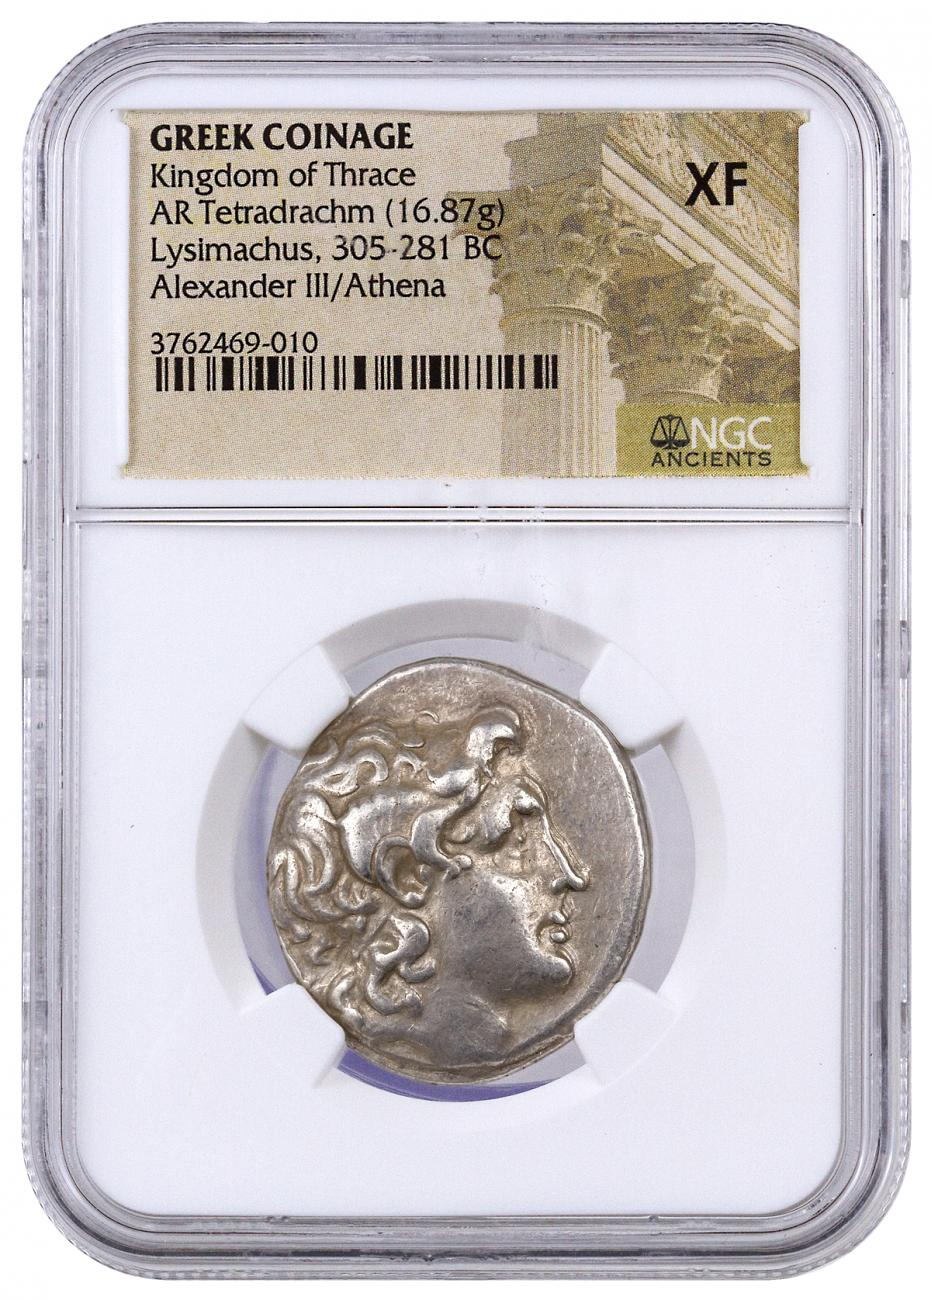 Greek Kingdom of Thrace, Silver Tetradrachm of Lysimachus (305-281 BC) - obv. Alexander the Great/rv. Athena NGC XF